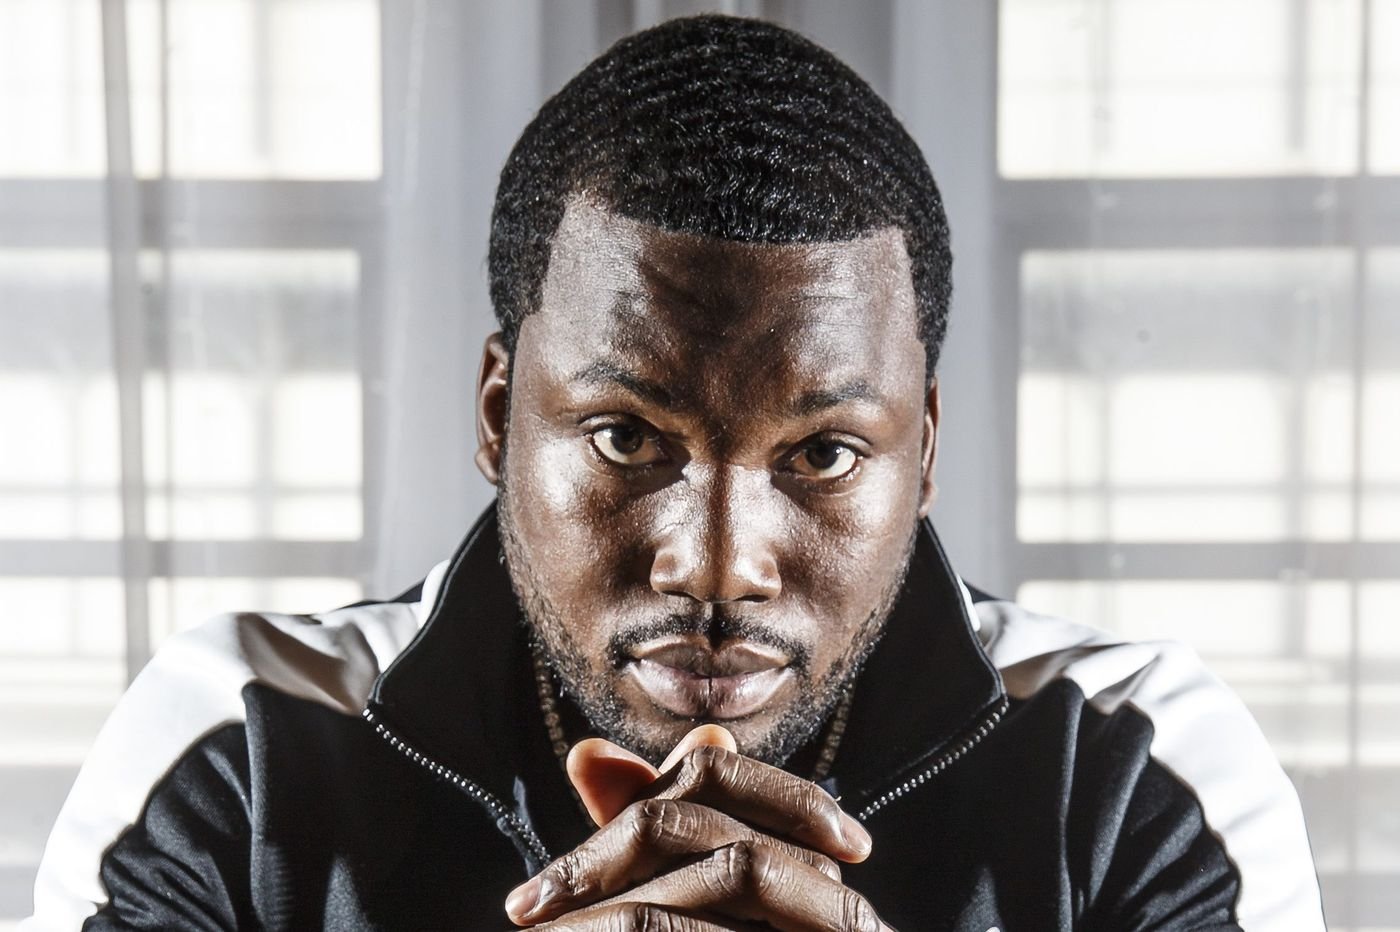 hot sale online fc544 3e18c Meek Mill to launch Puma pop-up shop ahead of Made in America gig in Philly  ...